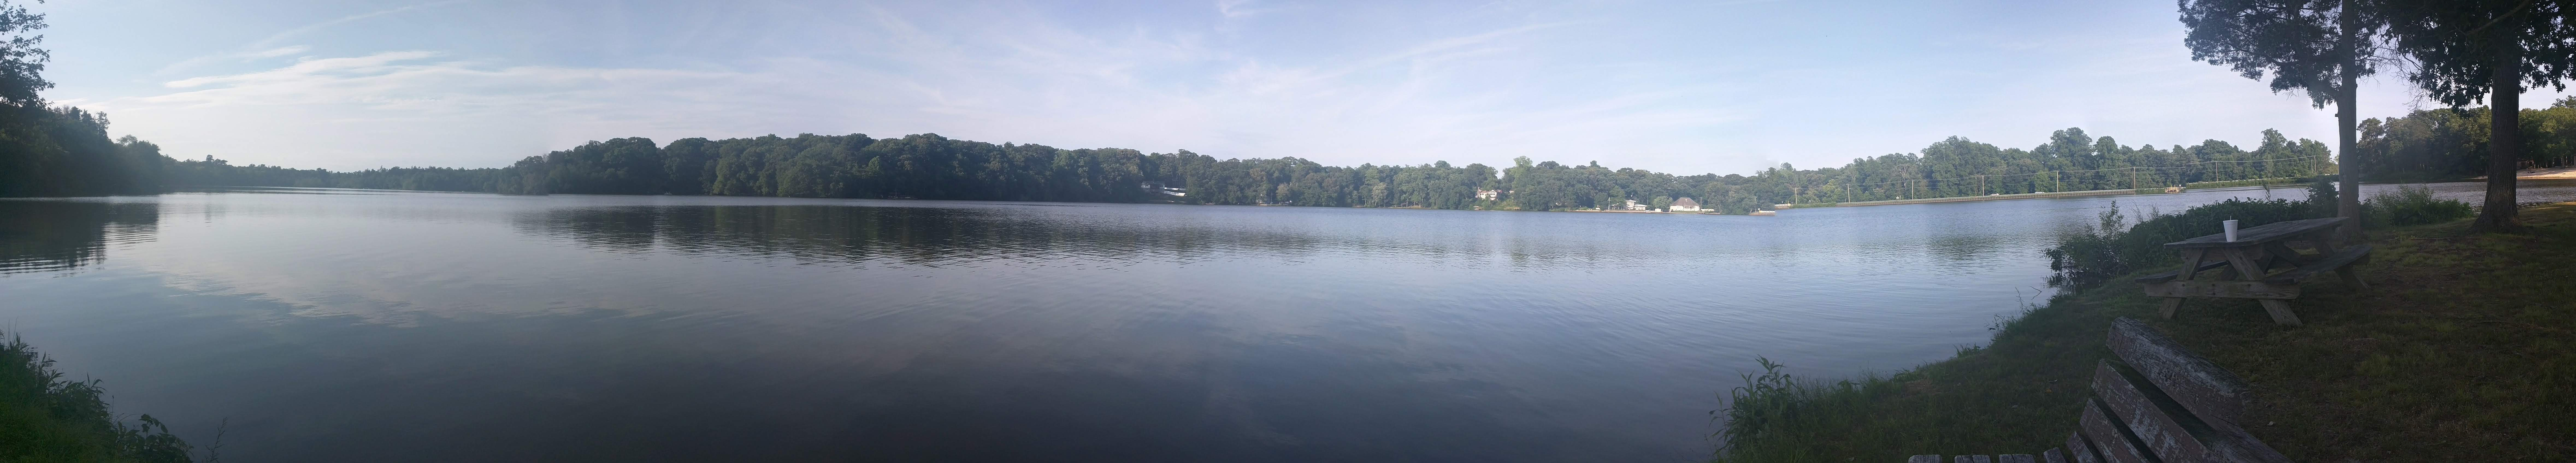 View of Sunset Lake from Piney Point